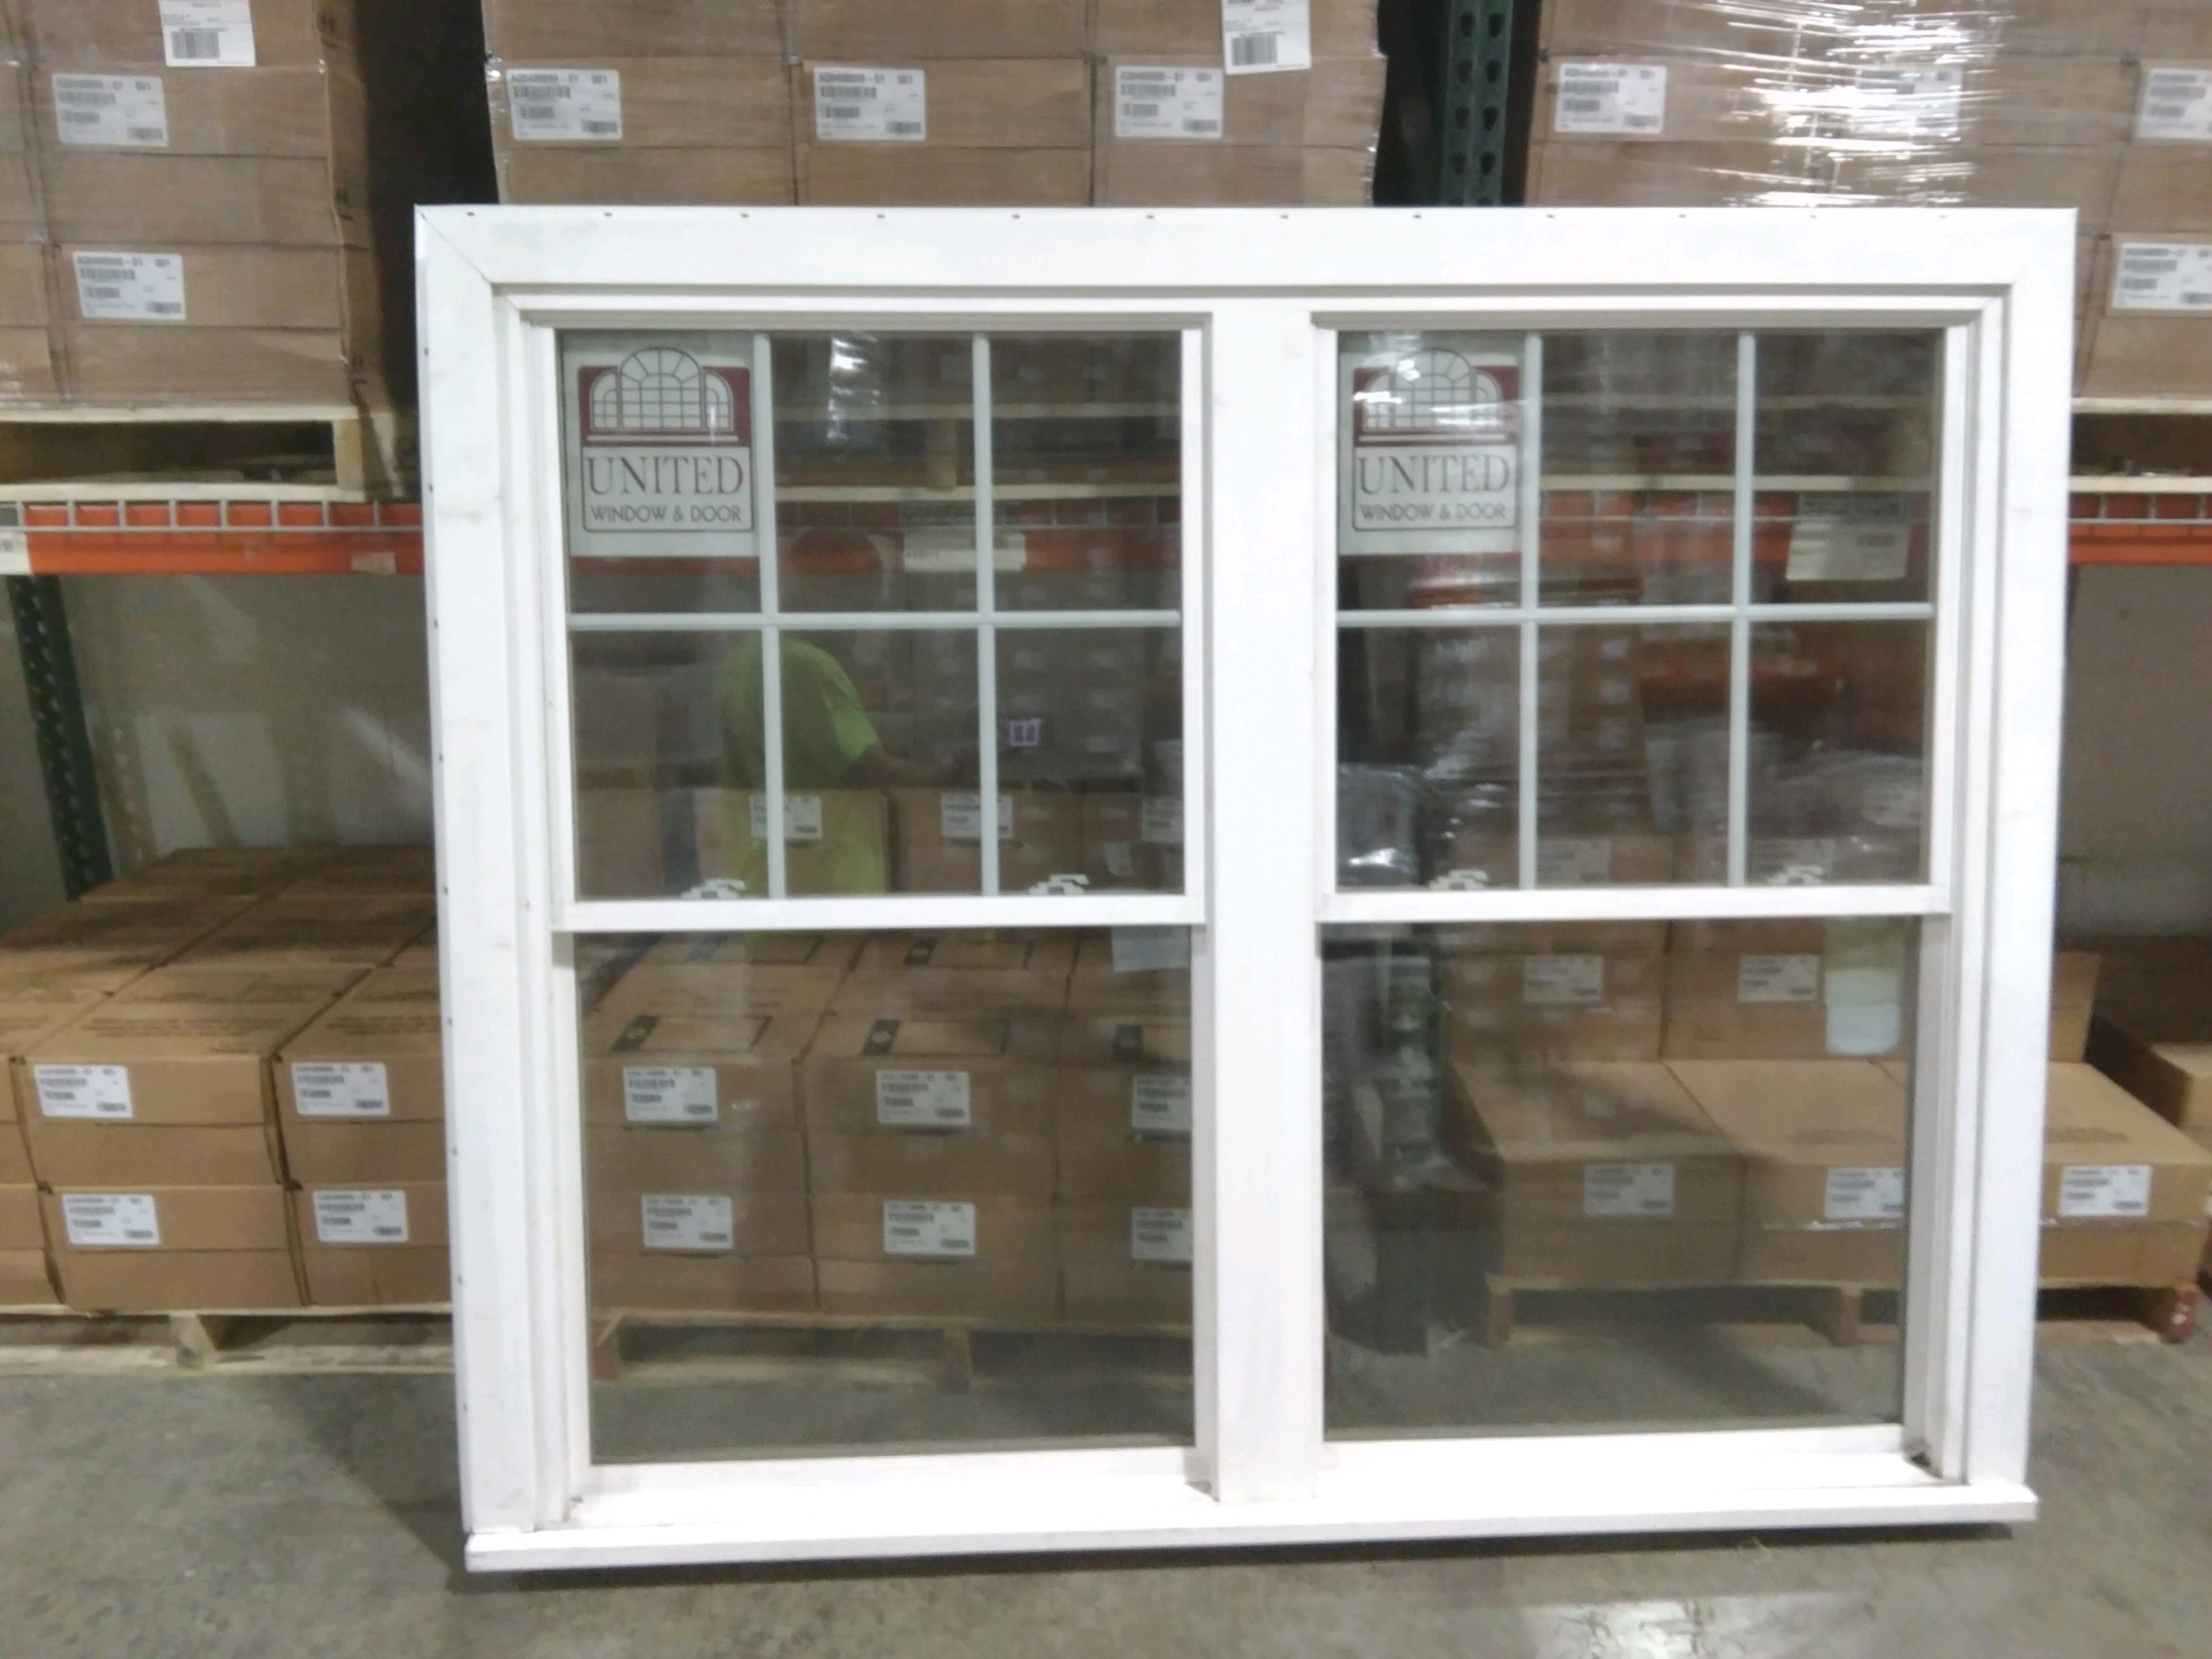 United 3'0x5'0 Double Wide Window